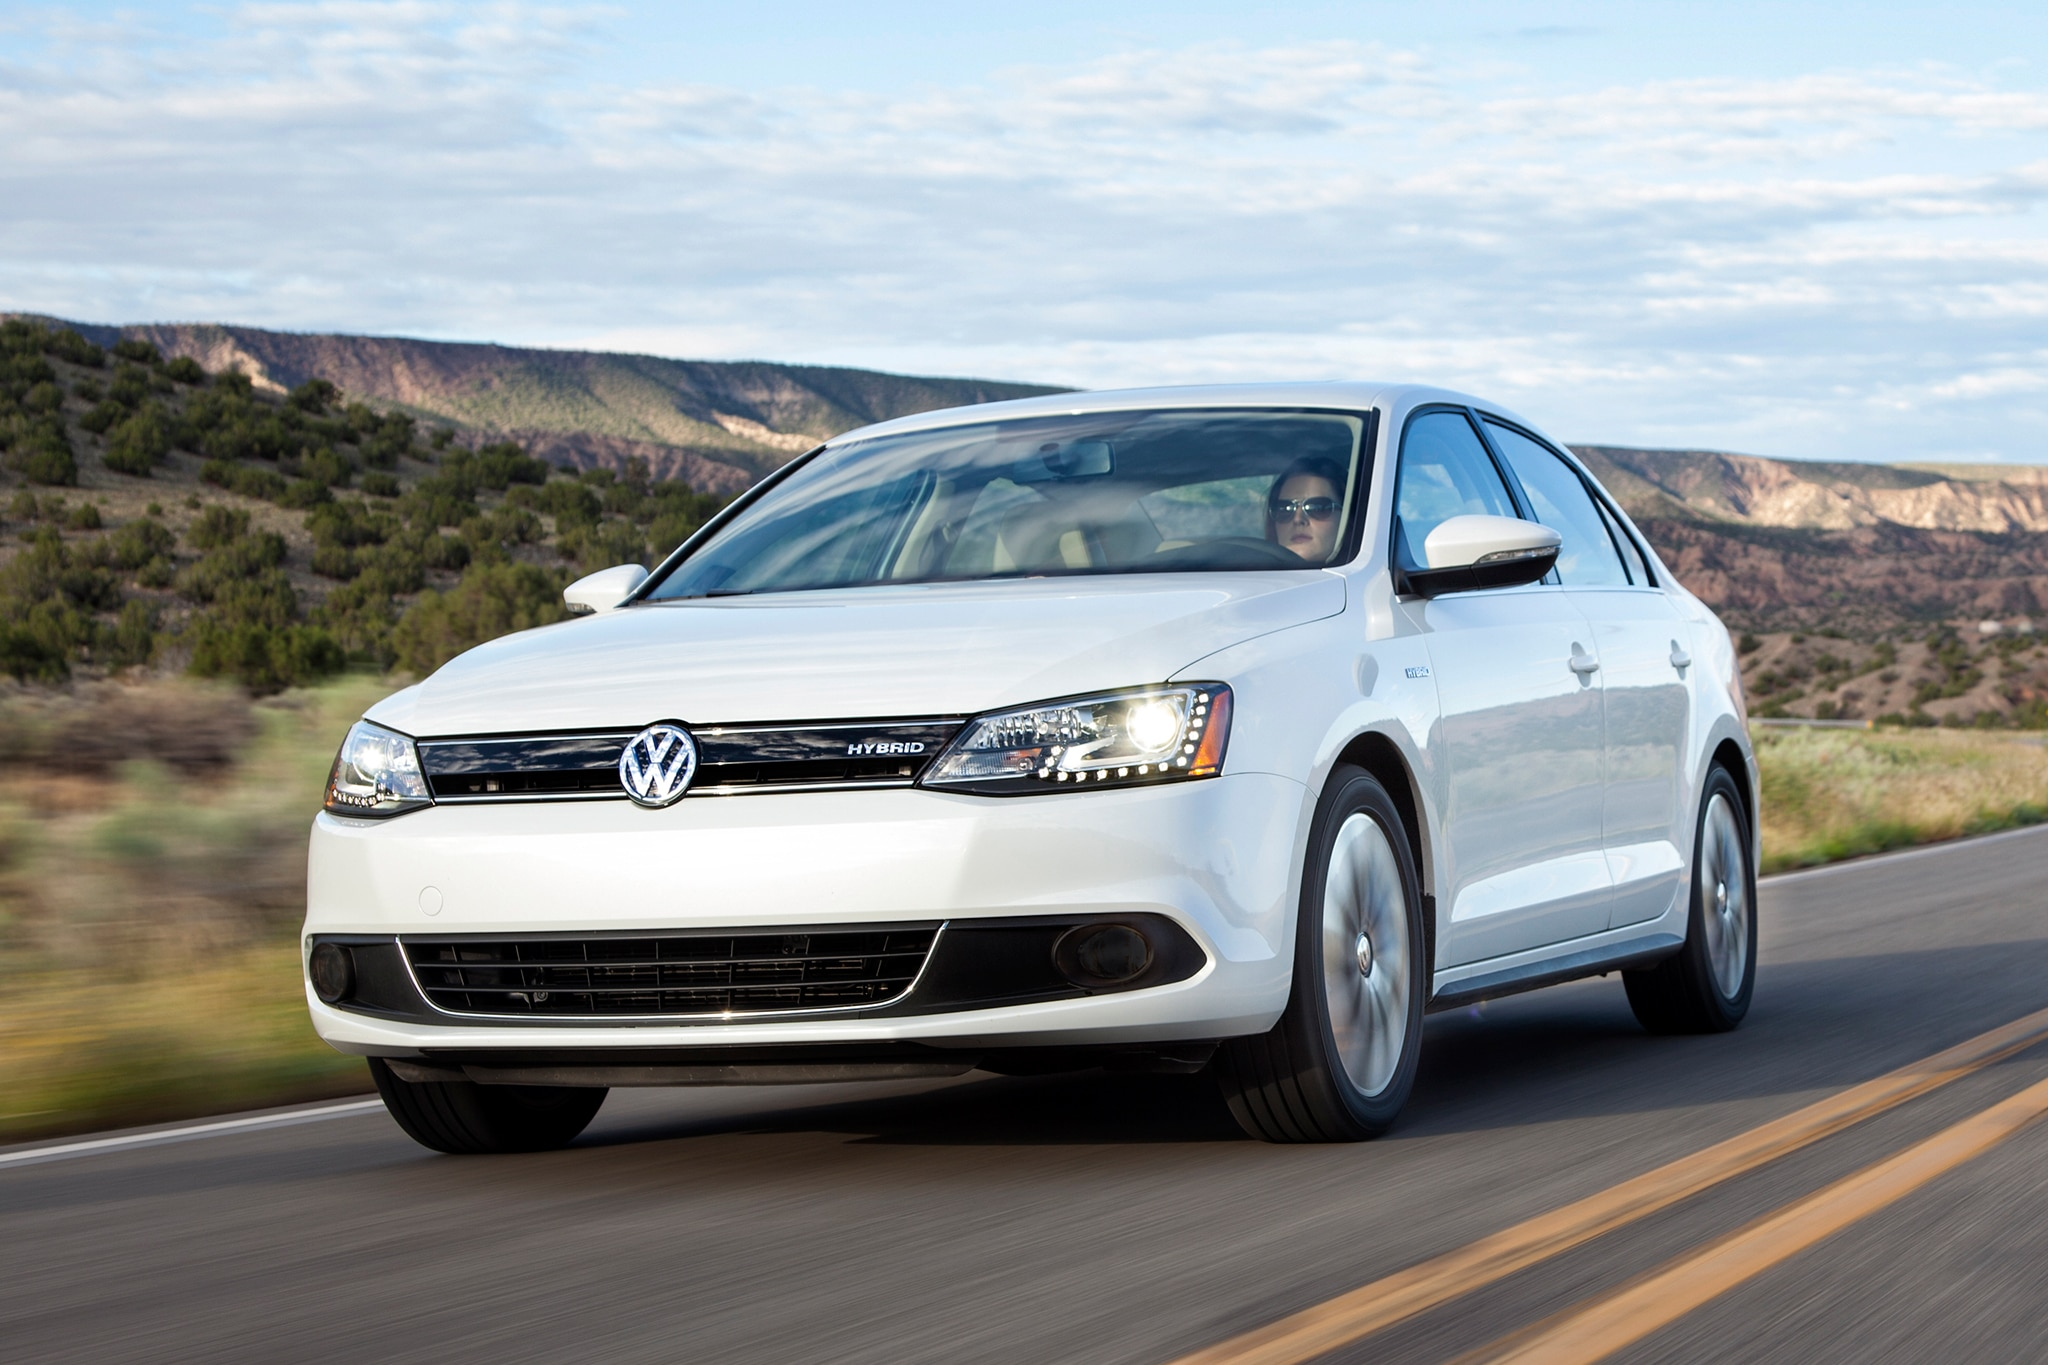 2014 volkswagen jetta gains independent rear suspension 1 8t engine. Black Bedroom Furniture Sets. Home Design Ideas